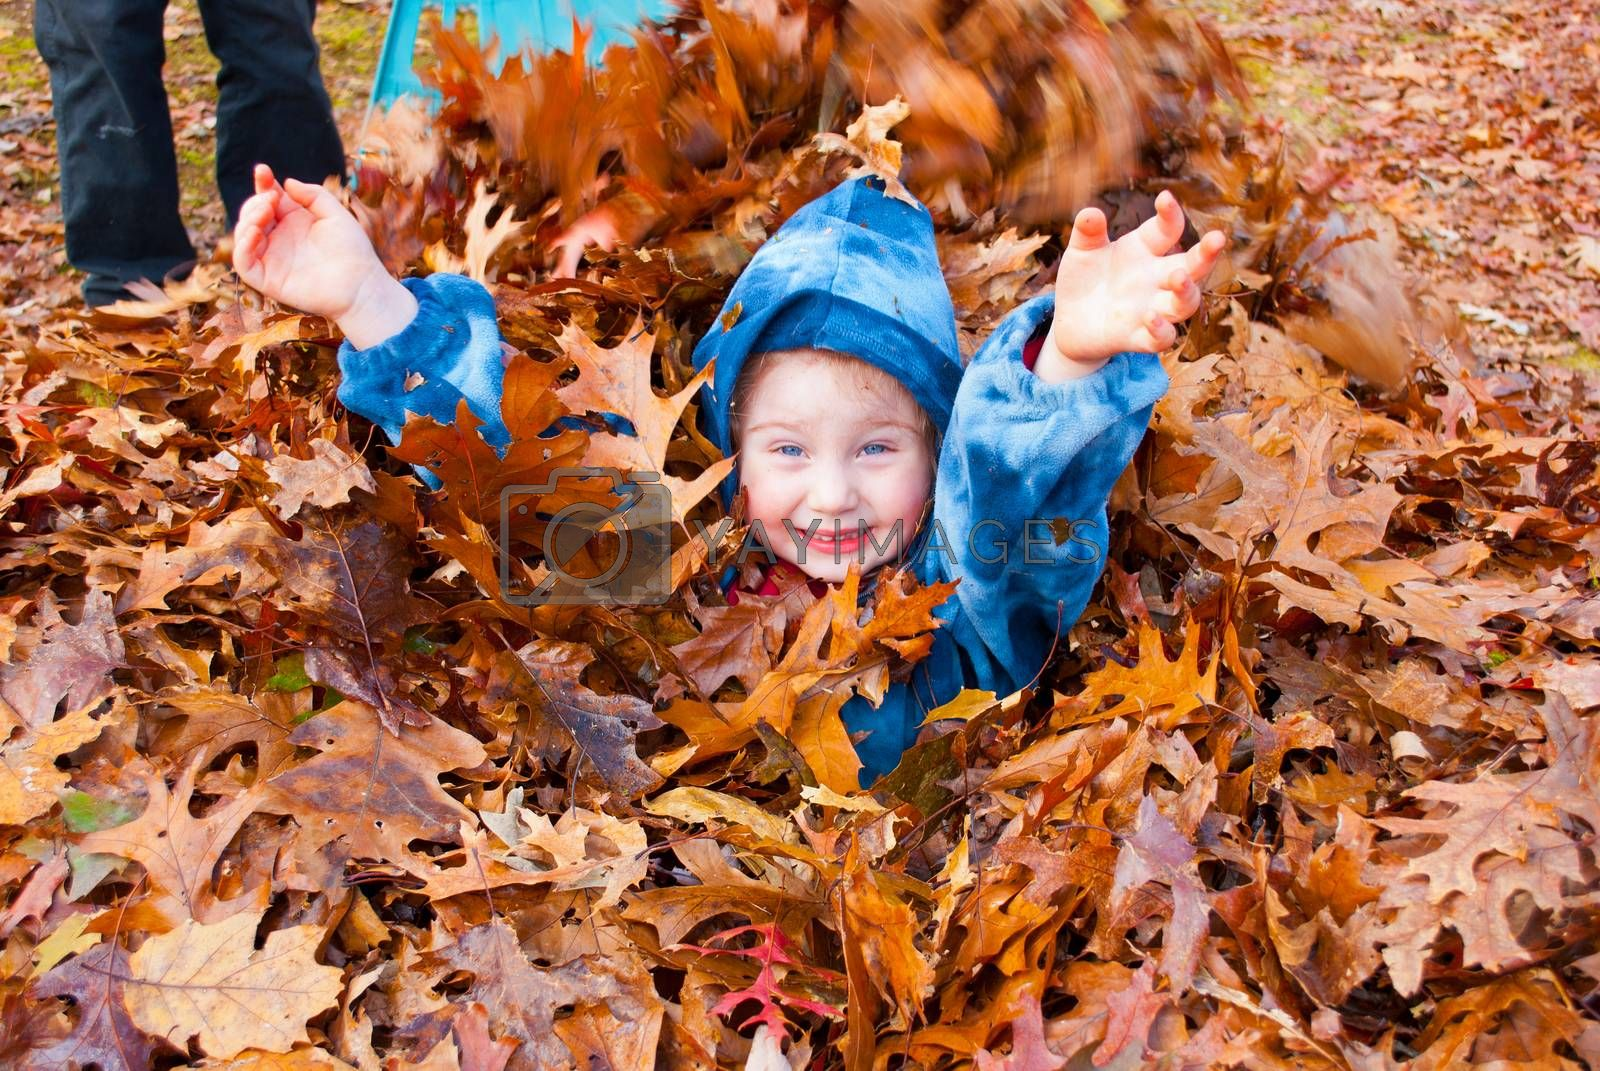 A happy Litle girl enjoying an autumn pile of raked leaves outside day